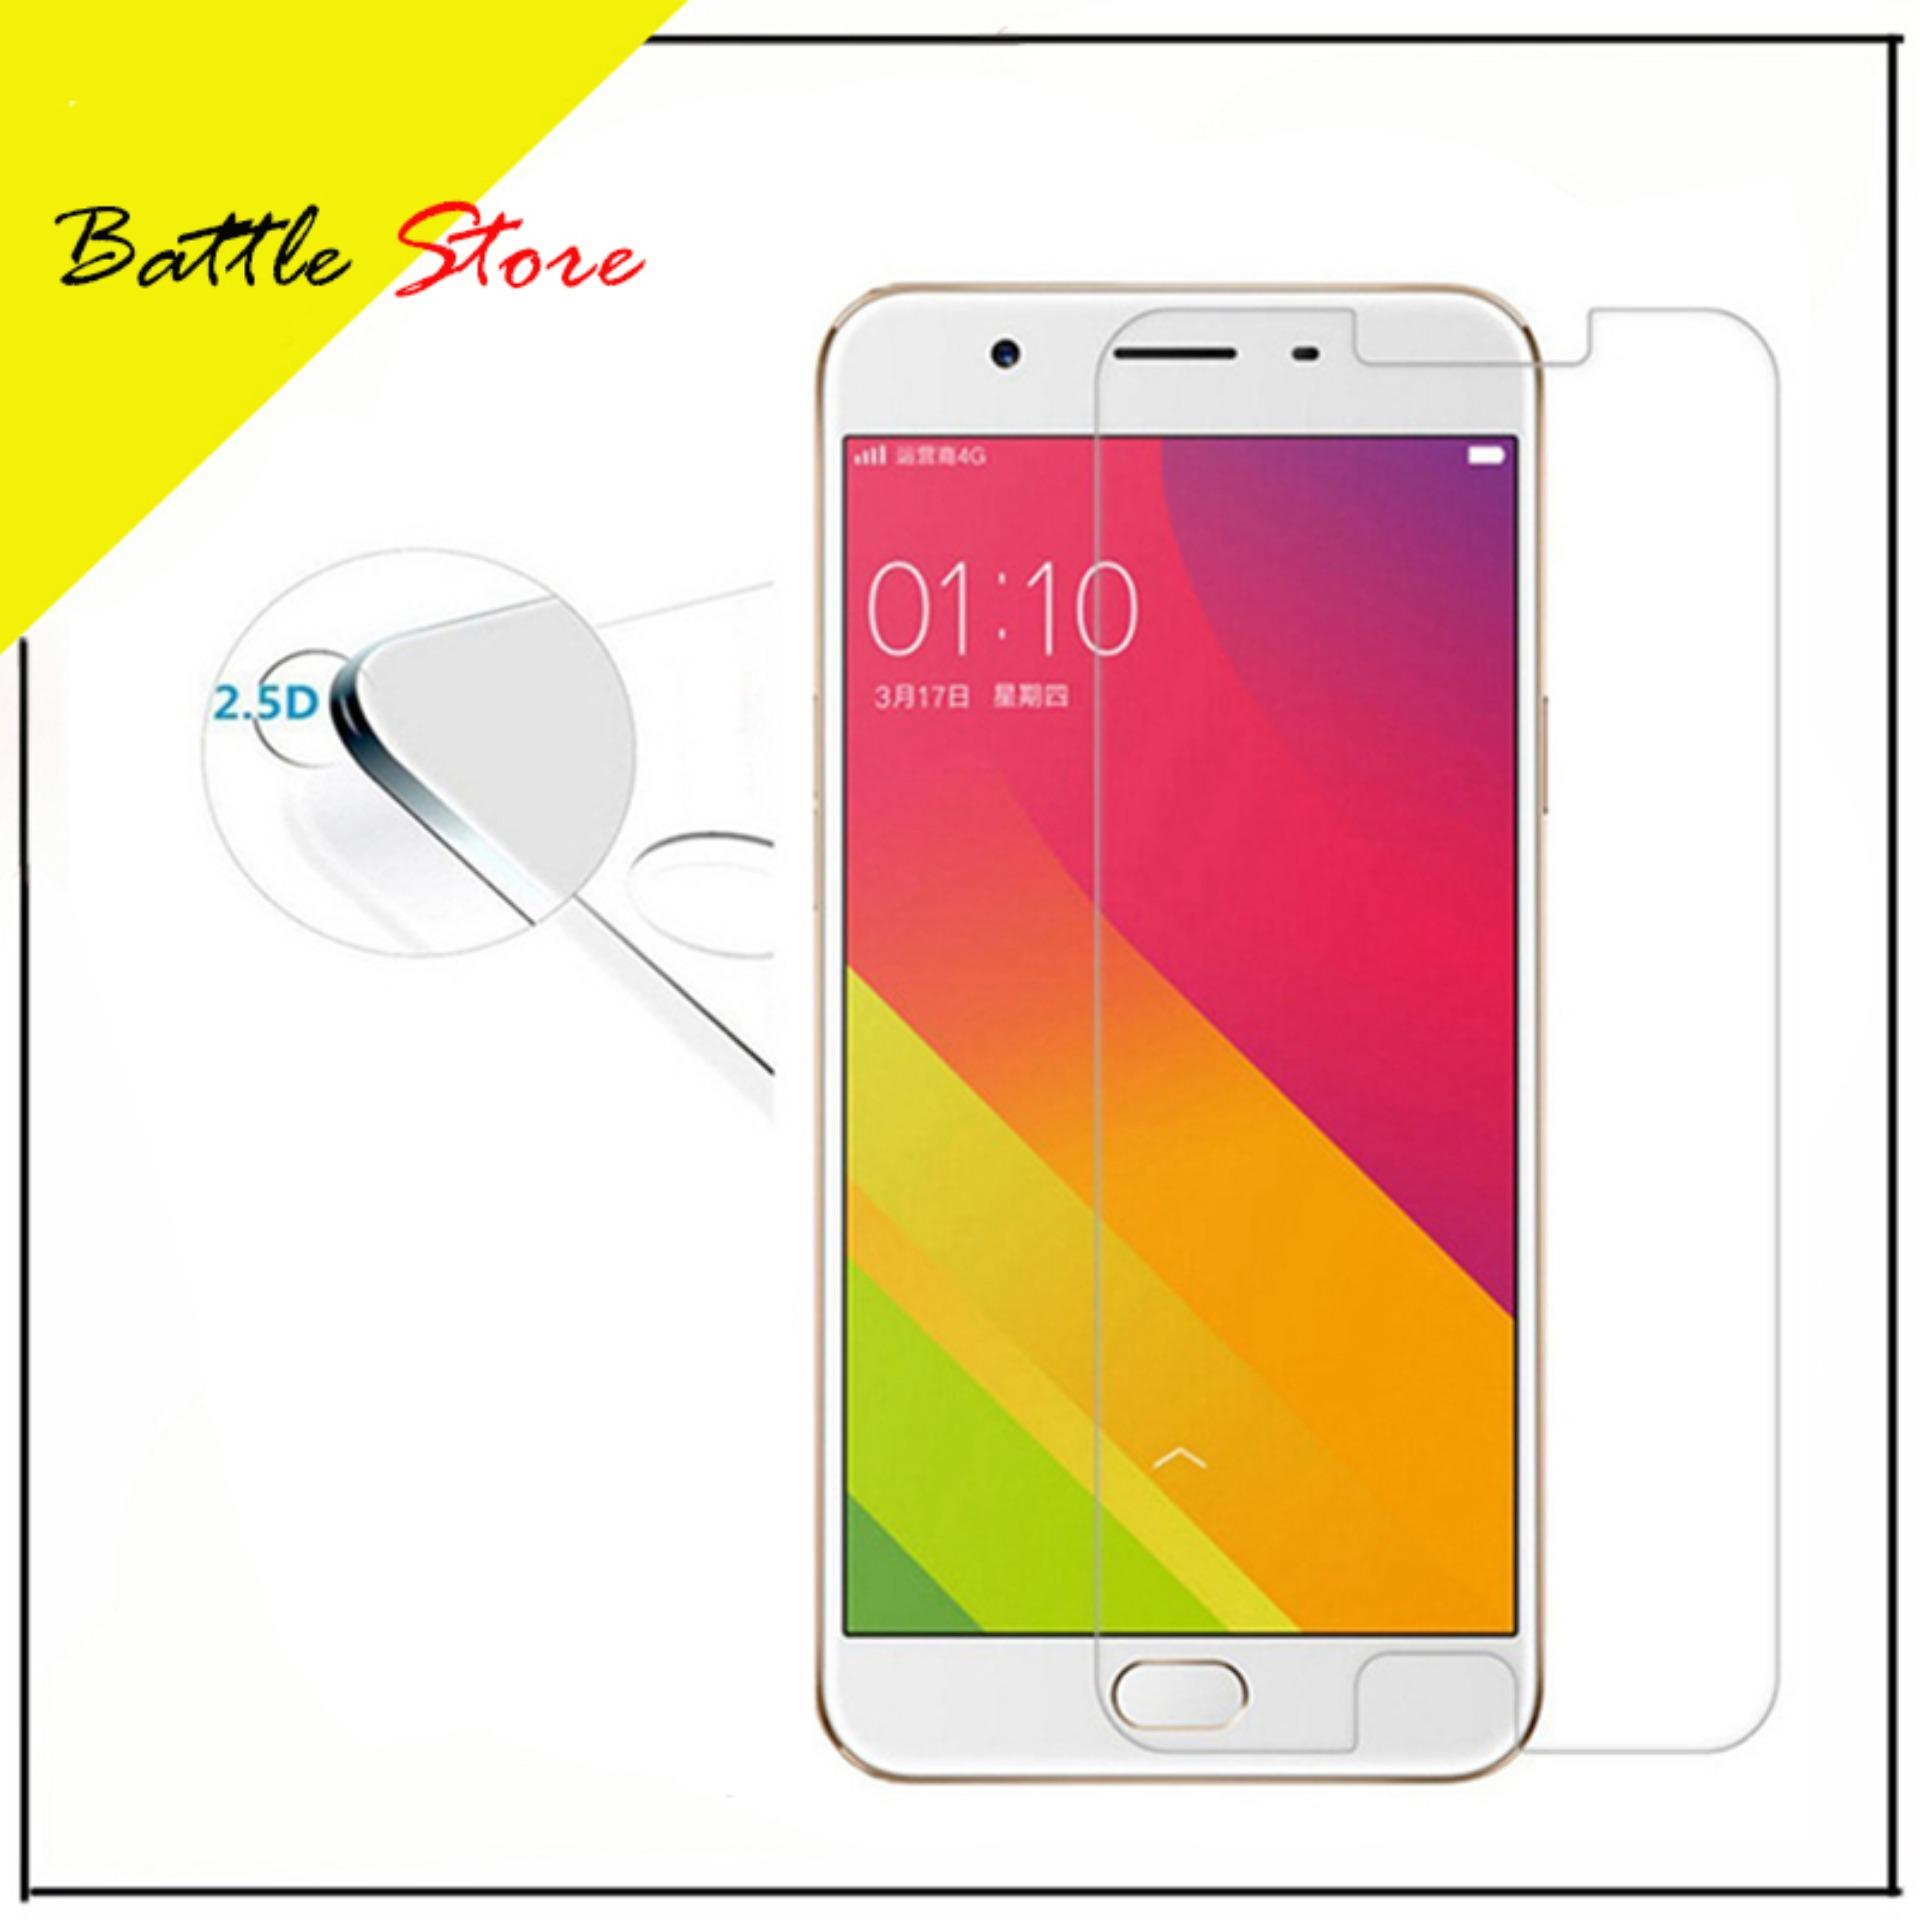 Oppo Joy R1001 Smile Screen Protector Tempered Glass / Anti Gores Kaca - White Clear